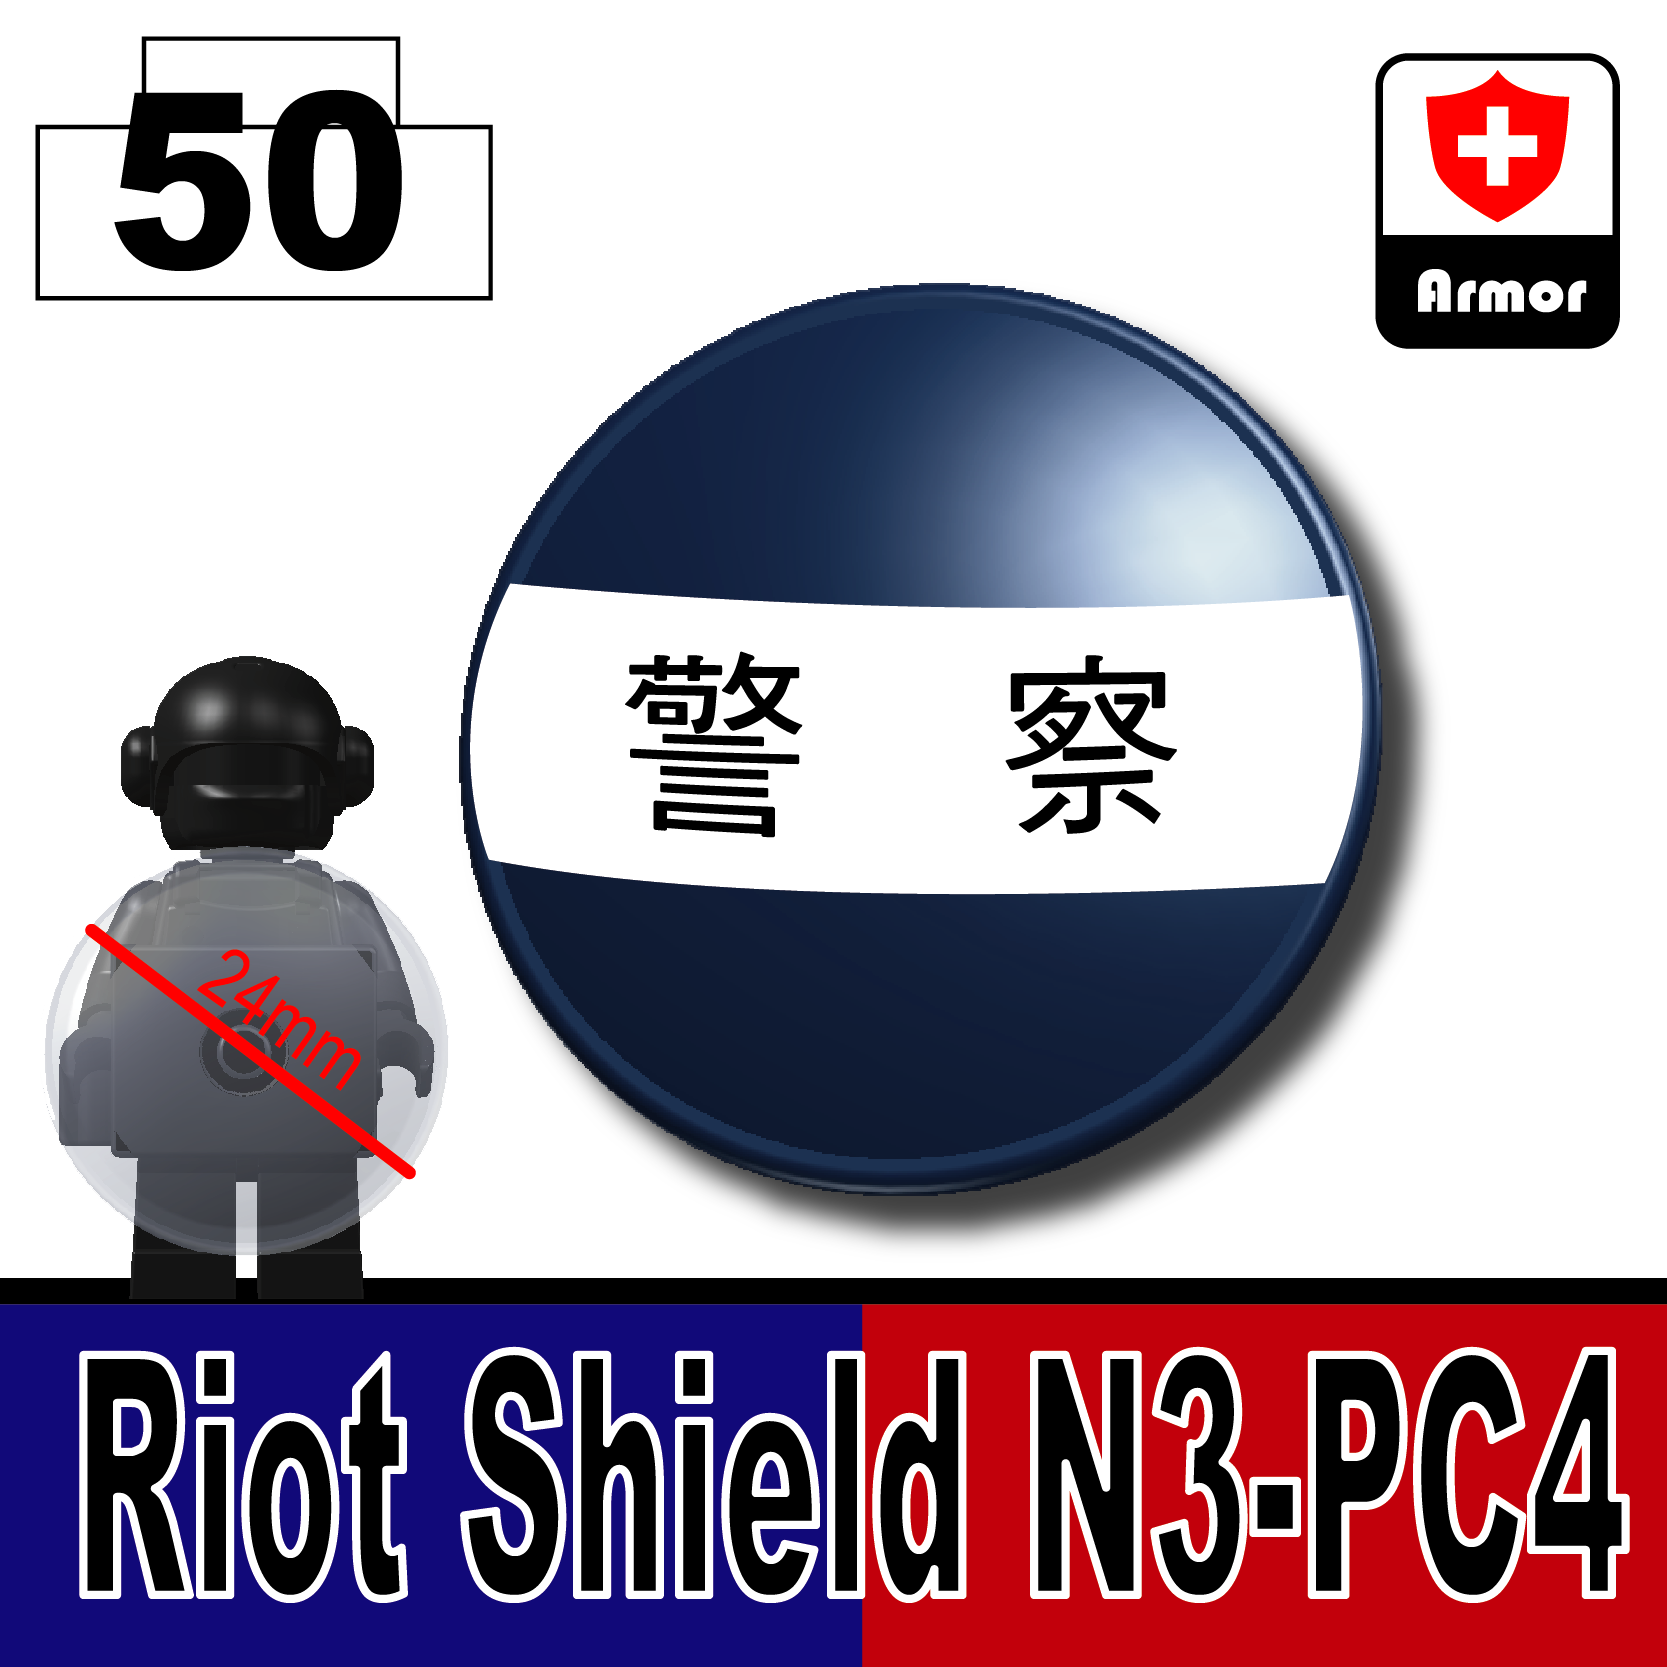 Riot Shield N3-PC4